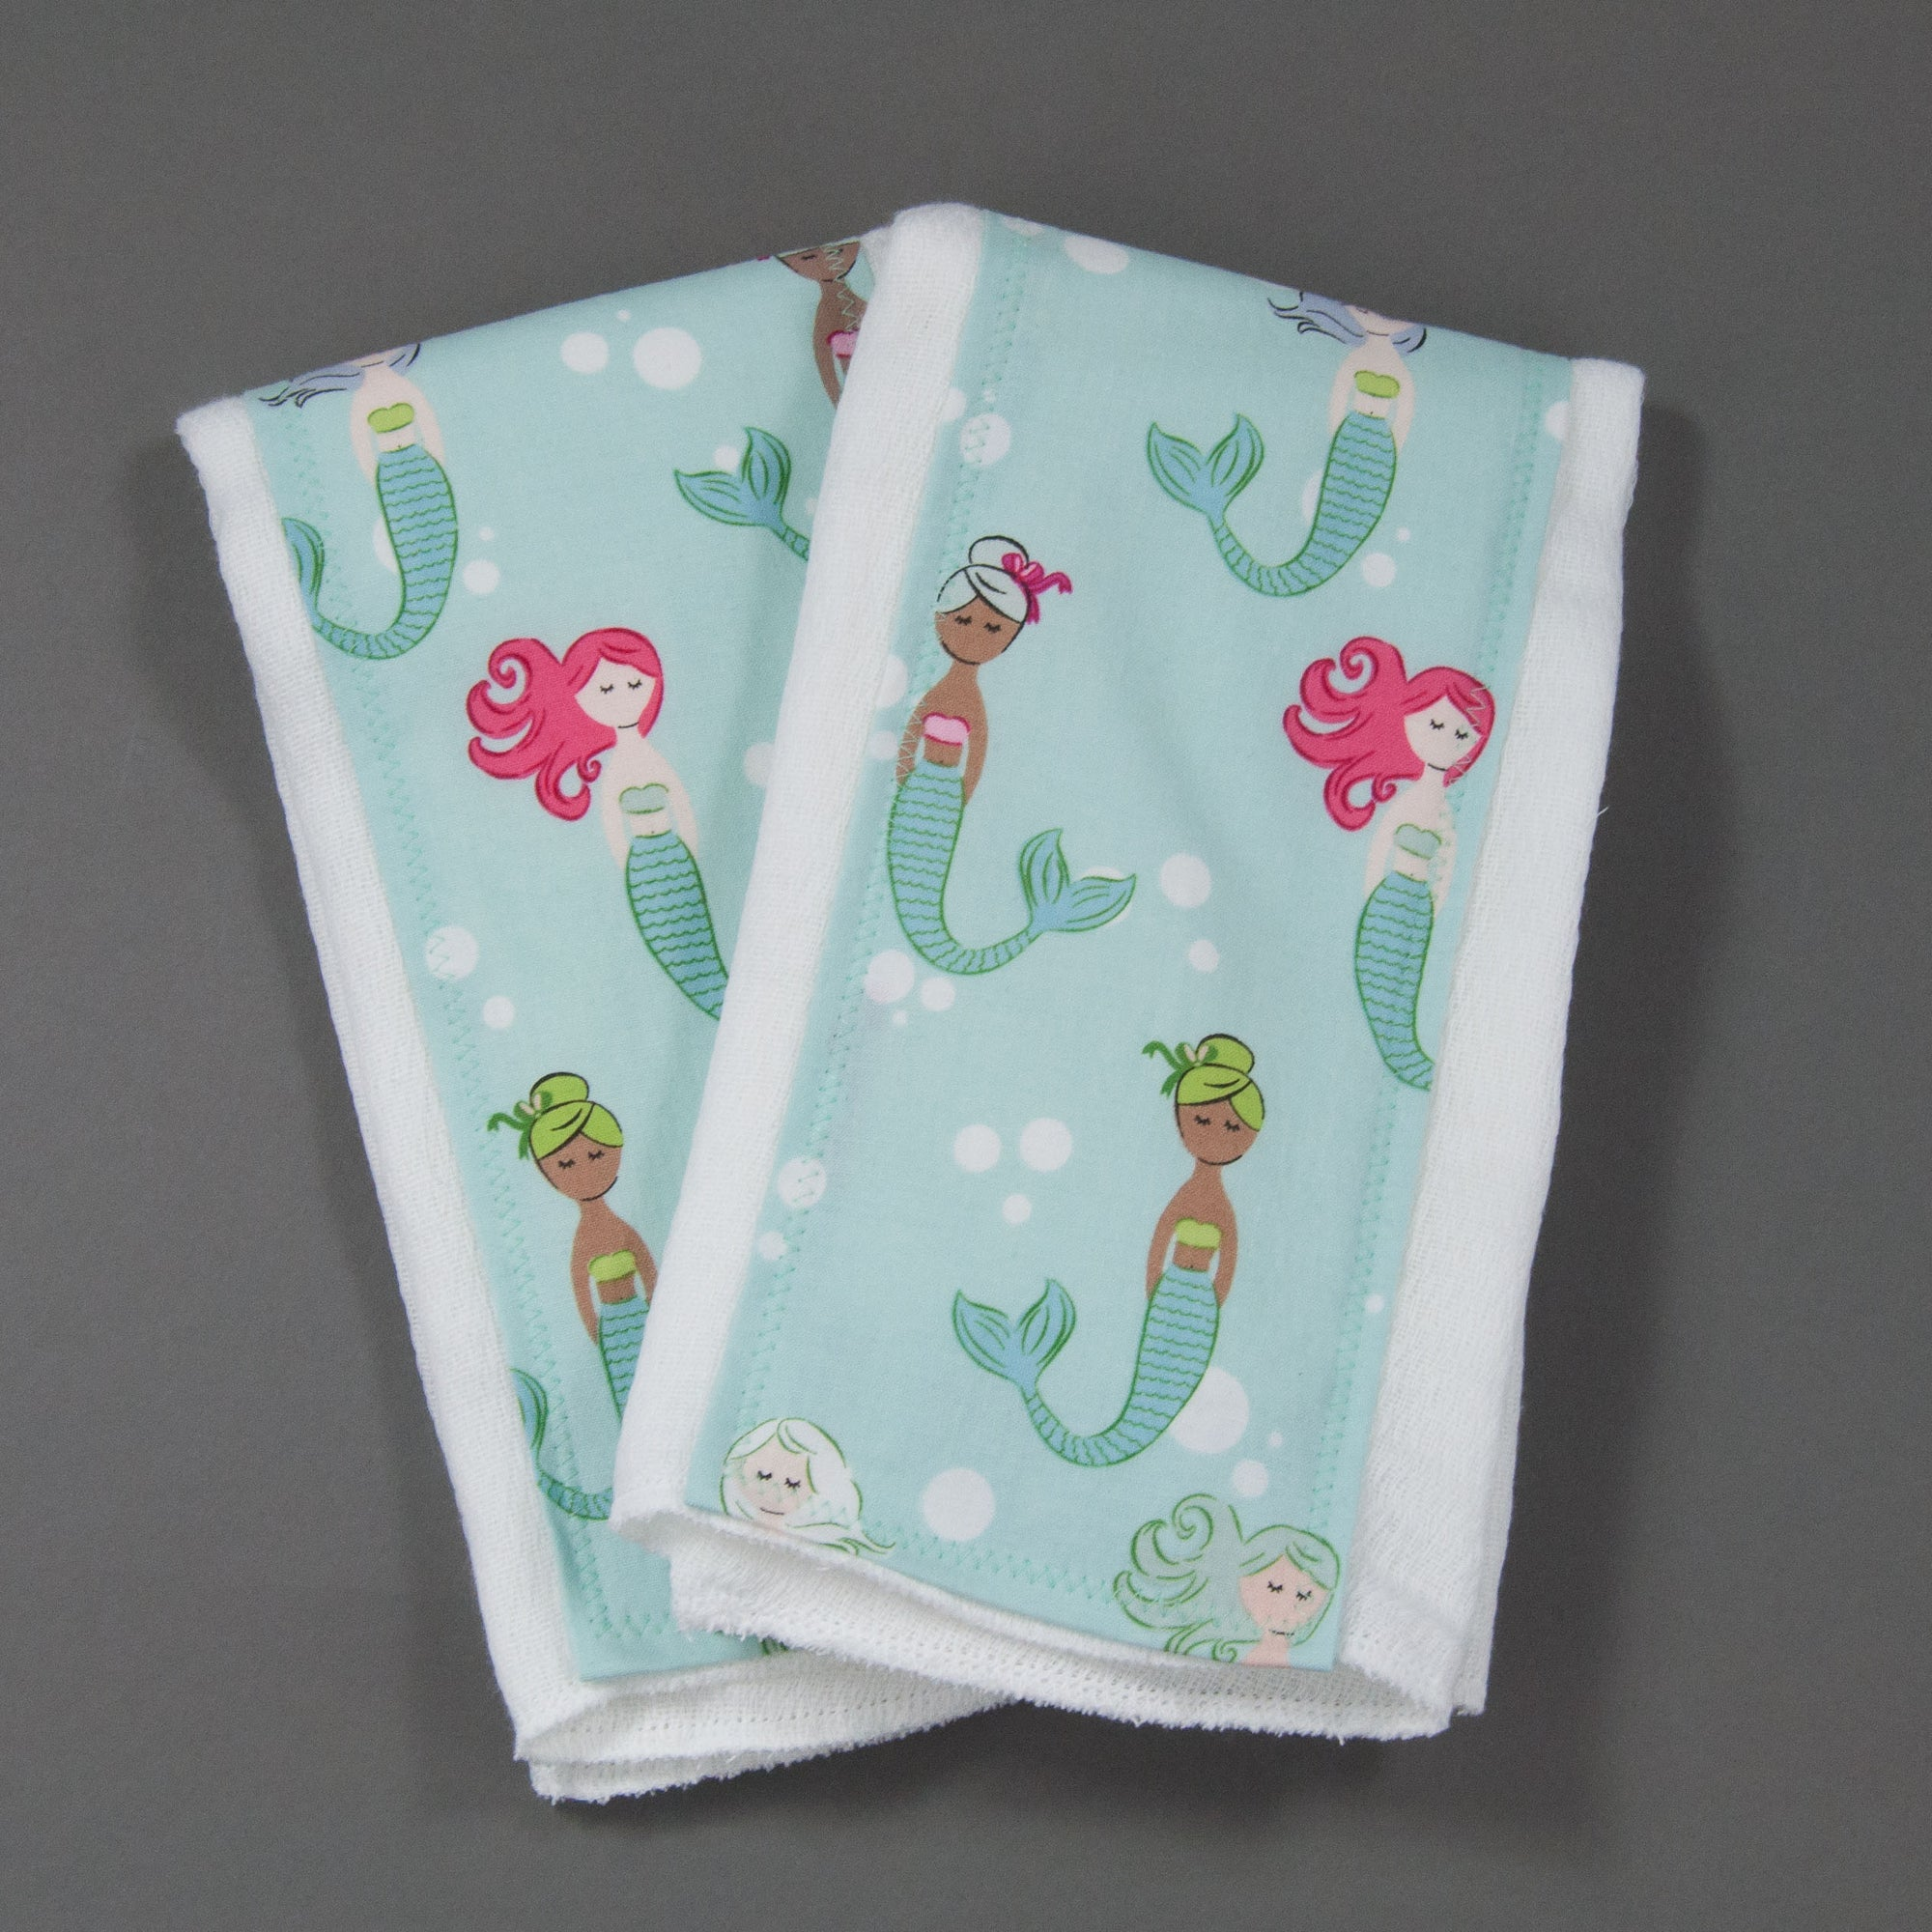 Colorful Mermaids Burp Cloth Set, Burp Cloth Set, - MarshMueller